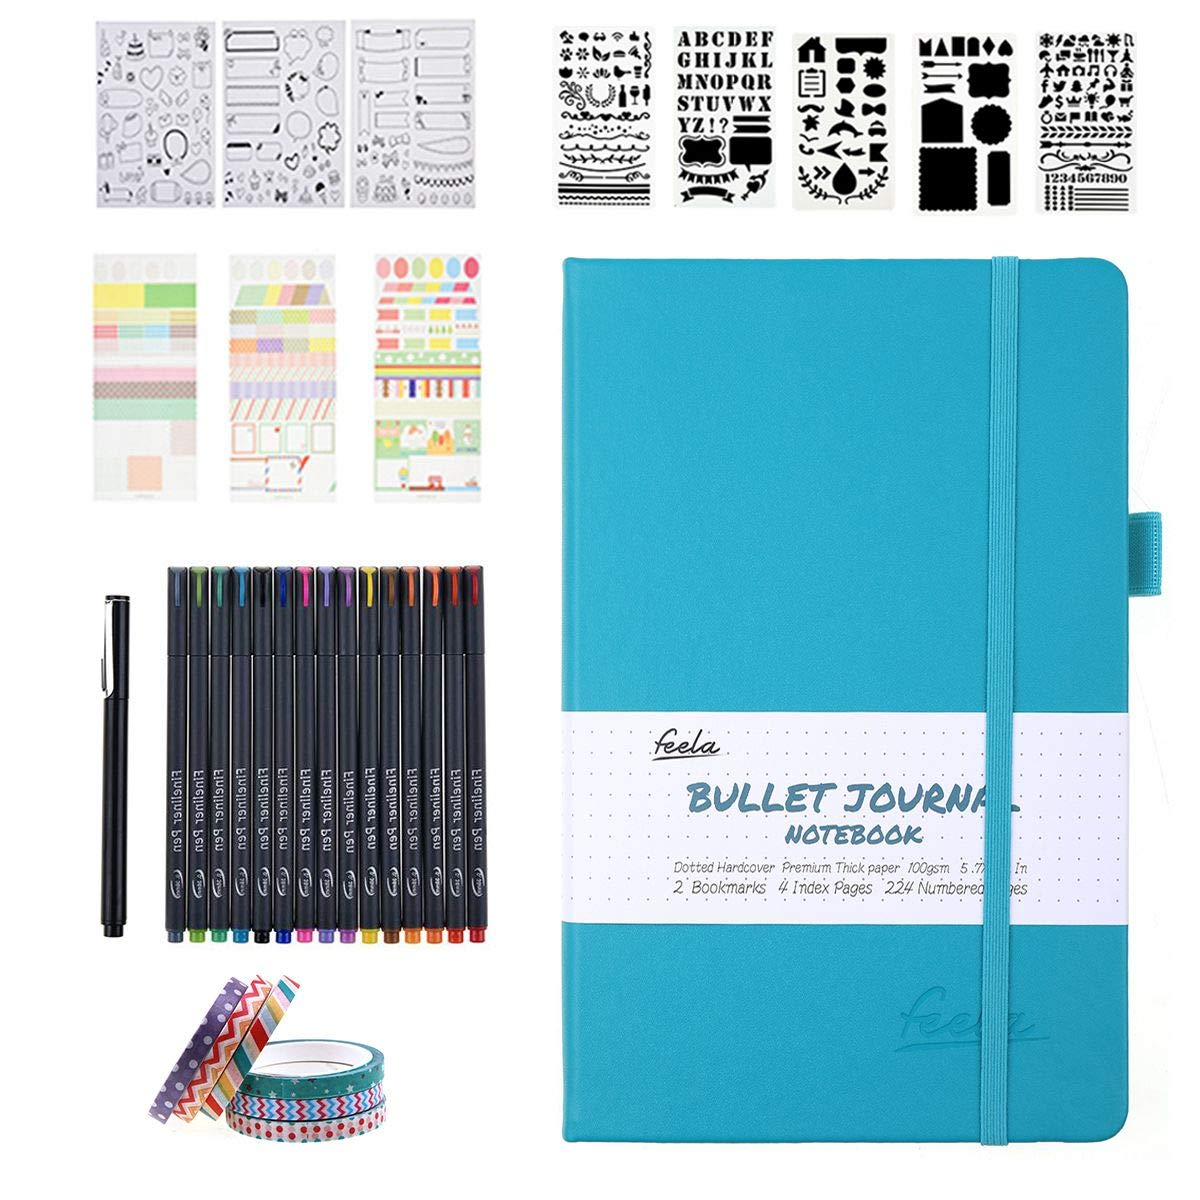 Bullet Dotted Journal Kit,Feela A5 Dotted Bullet Grid Journal Set with a 224 Pages Teal Notebook,Fineliner Pens,Reusable Stencils,Sticker Sheet,Washi Tape,Black BallPen for Diary,Schedule Plan,Drawin